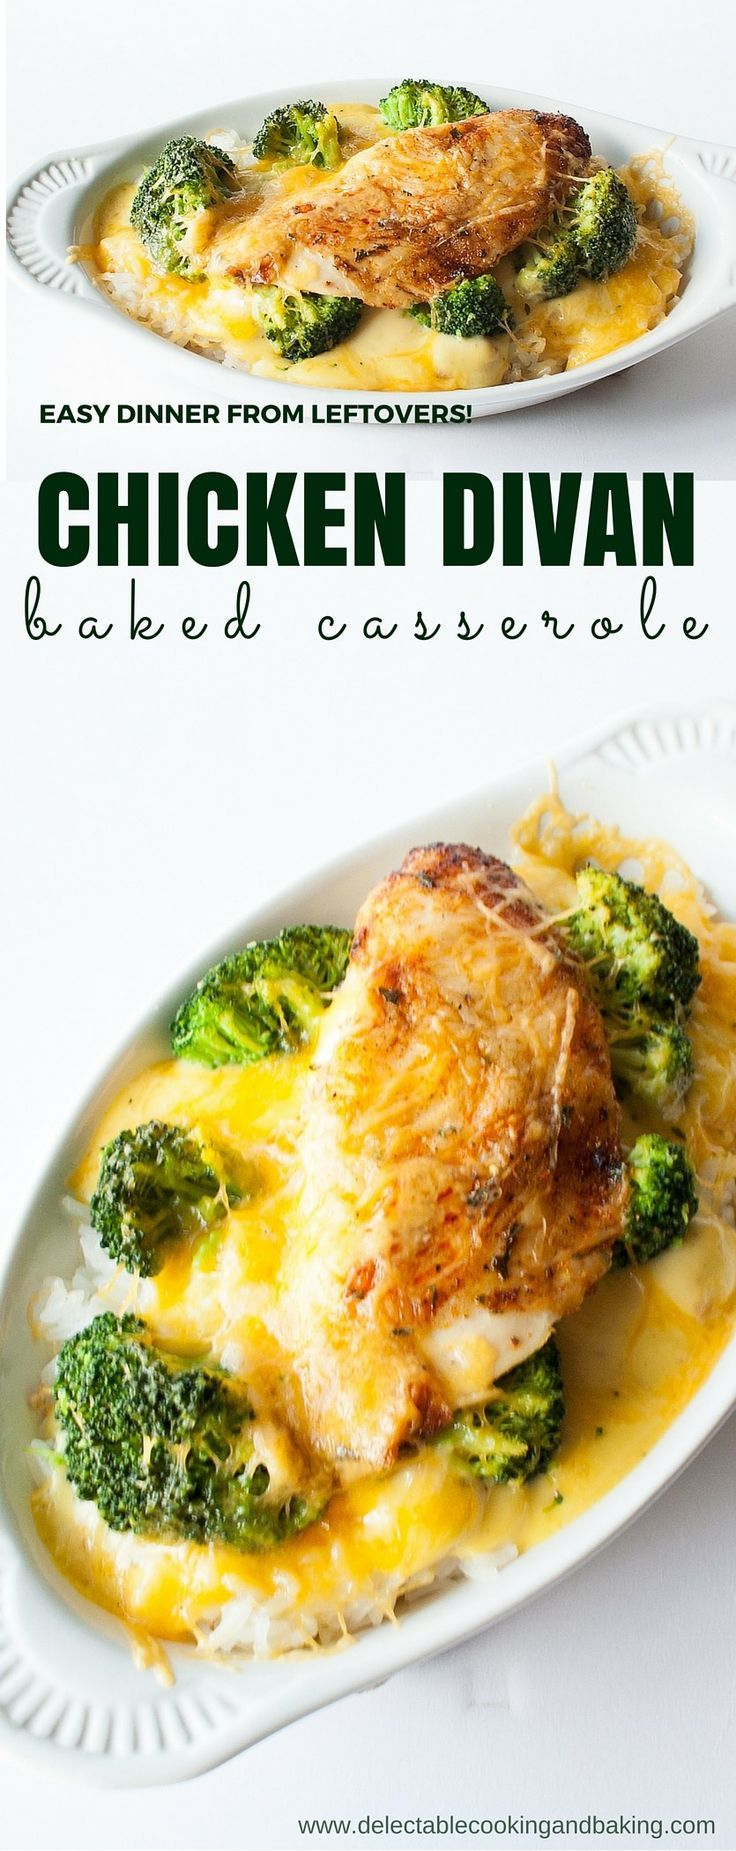 This quick and easy Chicken Divan Bake can be put together with leftovers and thrown in the oven, yet it is such an amazing comfort dish food! I usually get two nights worth of dinner from this dish (or more!)... DelectableCookingandBaking.com | #chickend